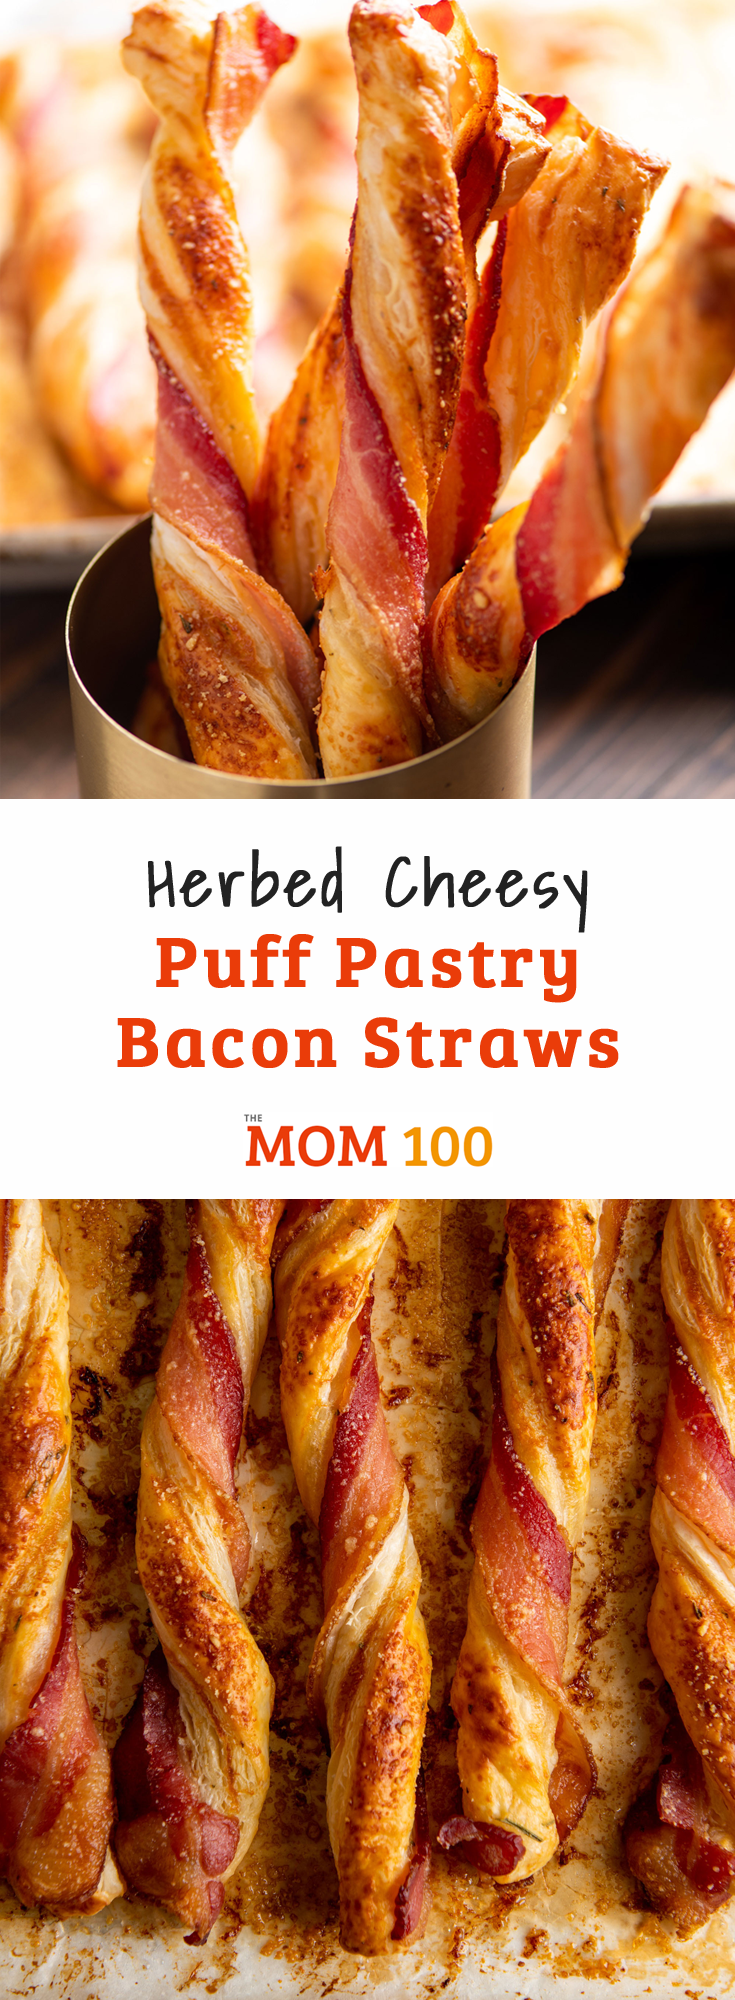 Herbed Cheesy Puff Pastry Bacon Straws / Flaky tender puff pastry gets all twisted up with cheese and bacon.